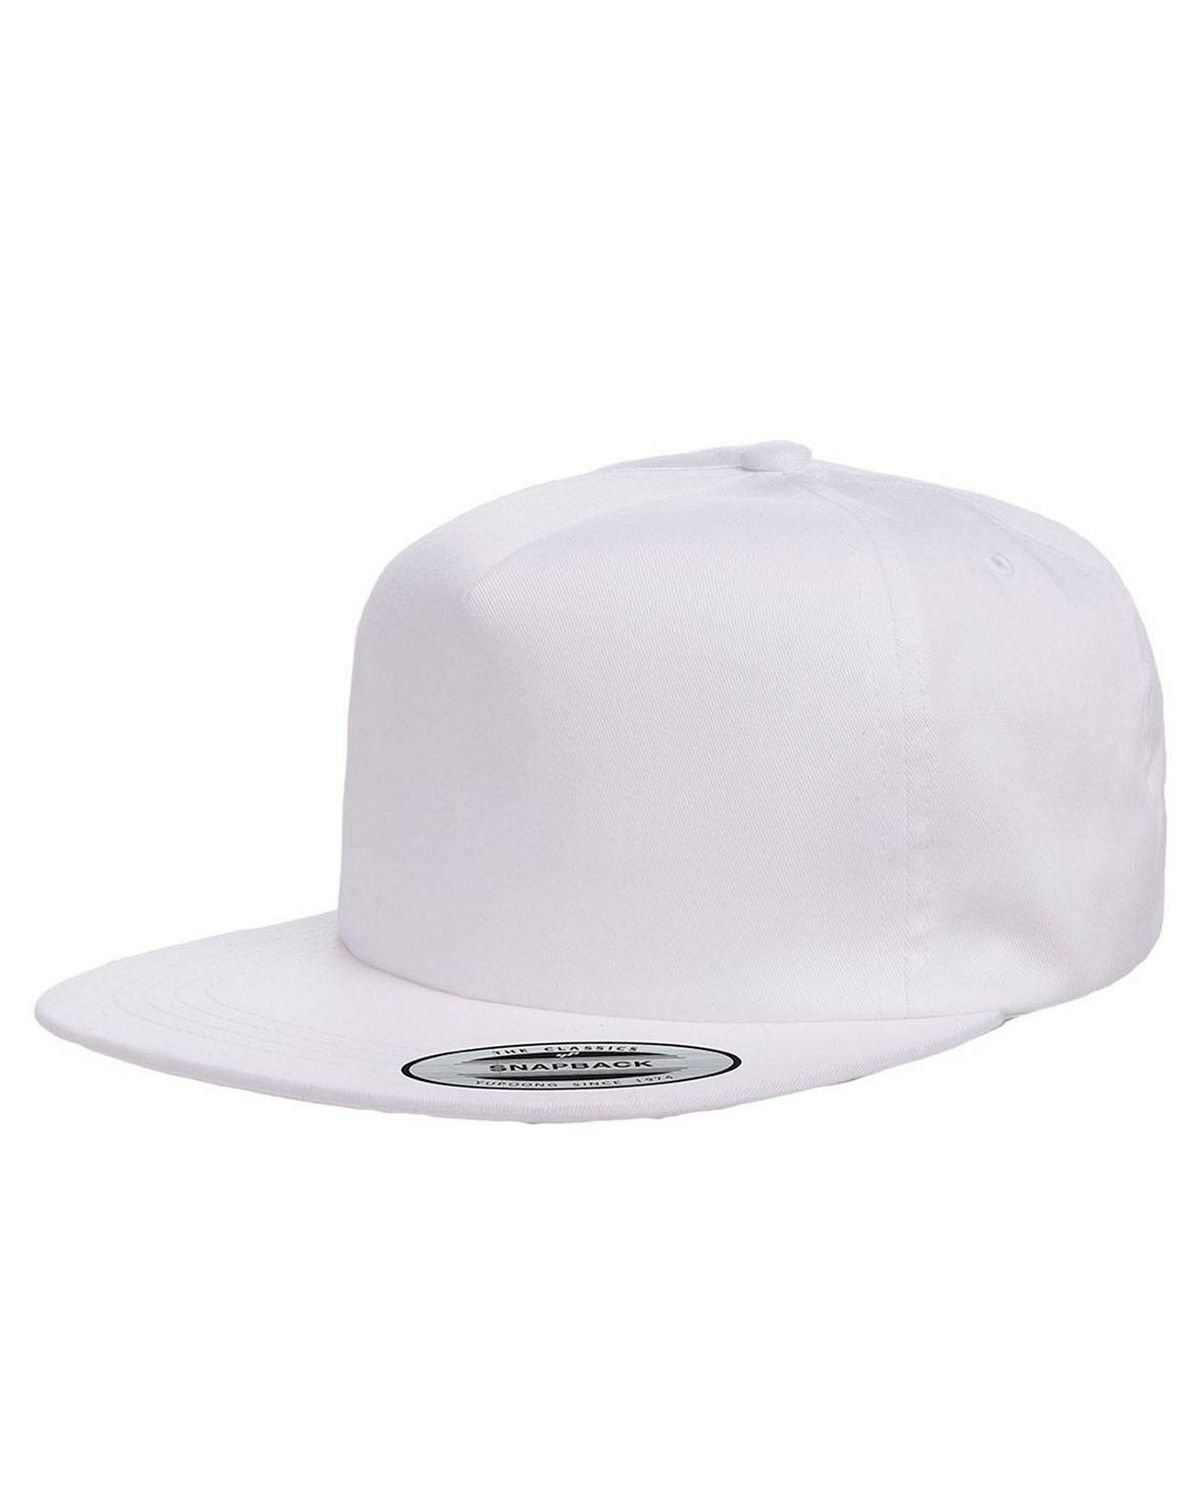 9987ec5796dab Logo Embroidered Yupoong Y6502 Adult Unstructured 5-Panel Snapback Cap